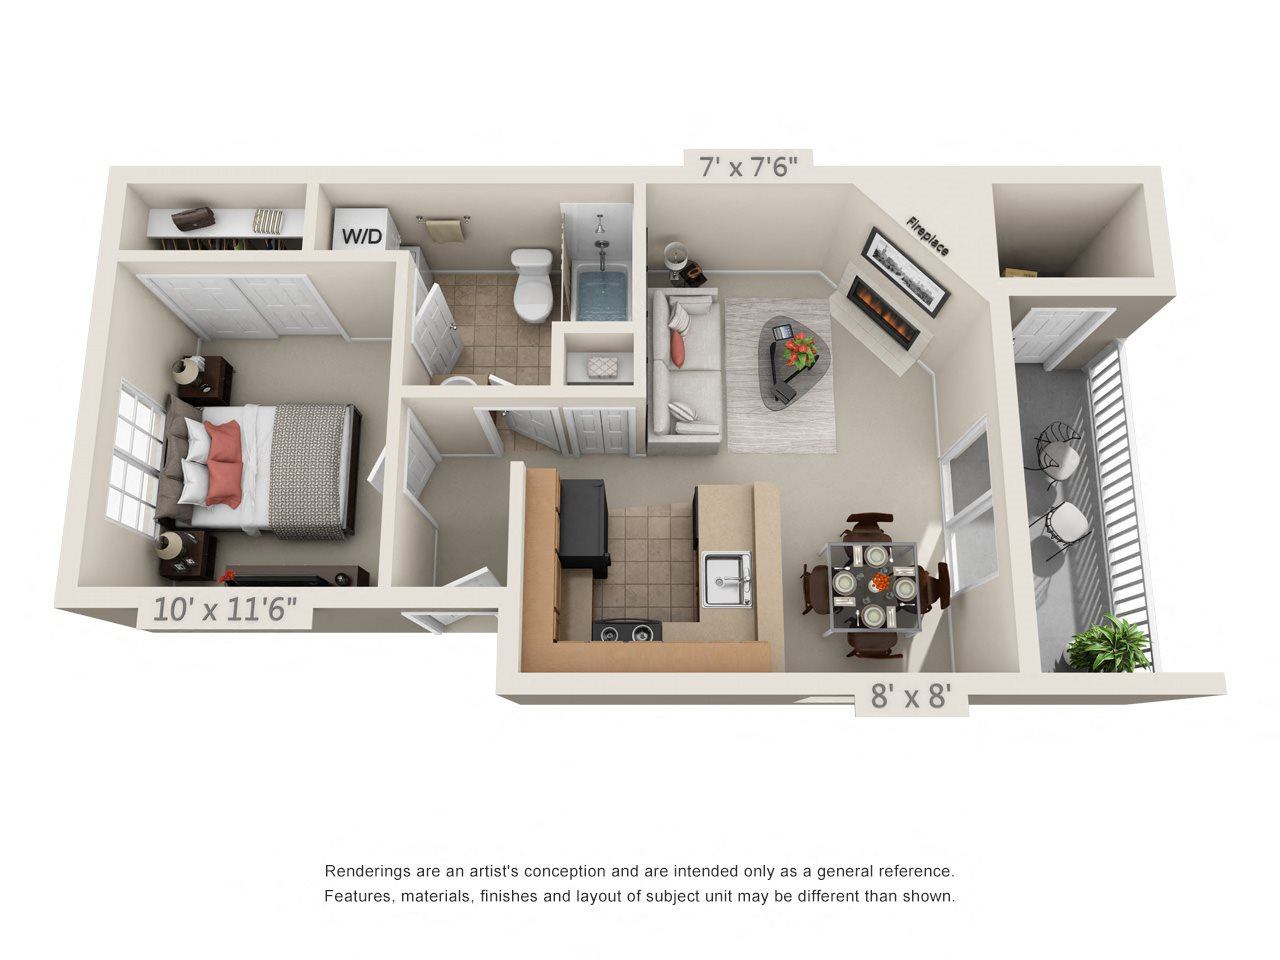 1 Bedroom 1 Bathroom - A1 Floor Plan 1